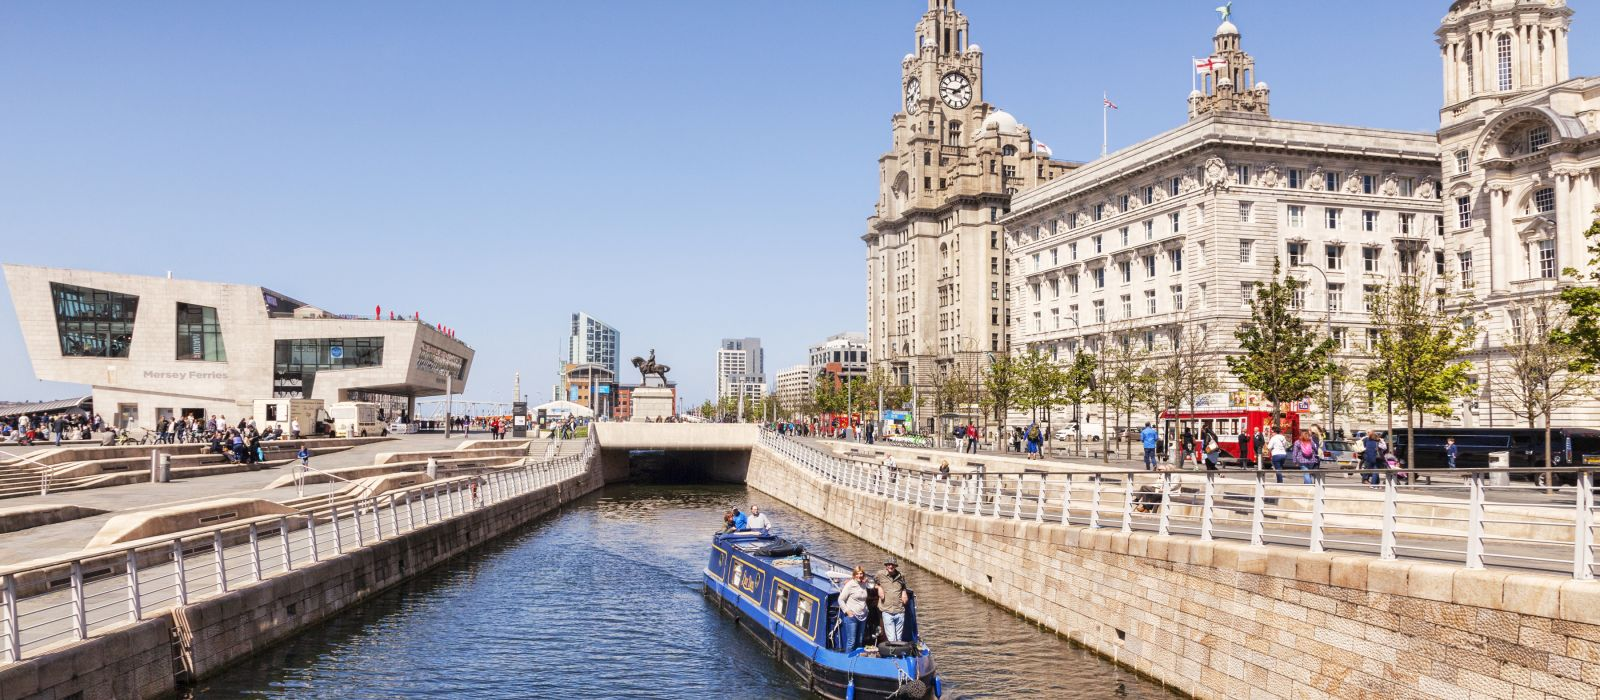 A narrowboat passing through the Liverpool Canal Link, Liverpool, England, UK, Europe